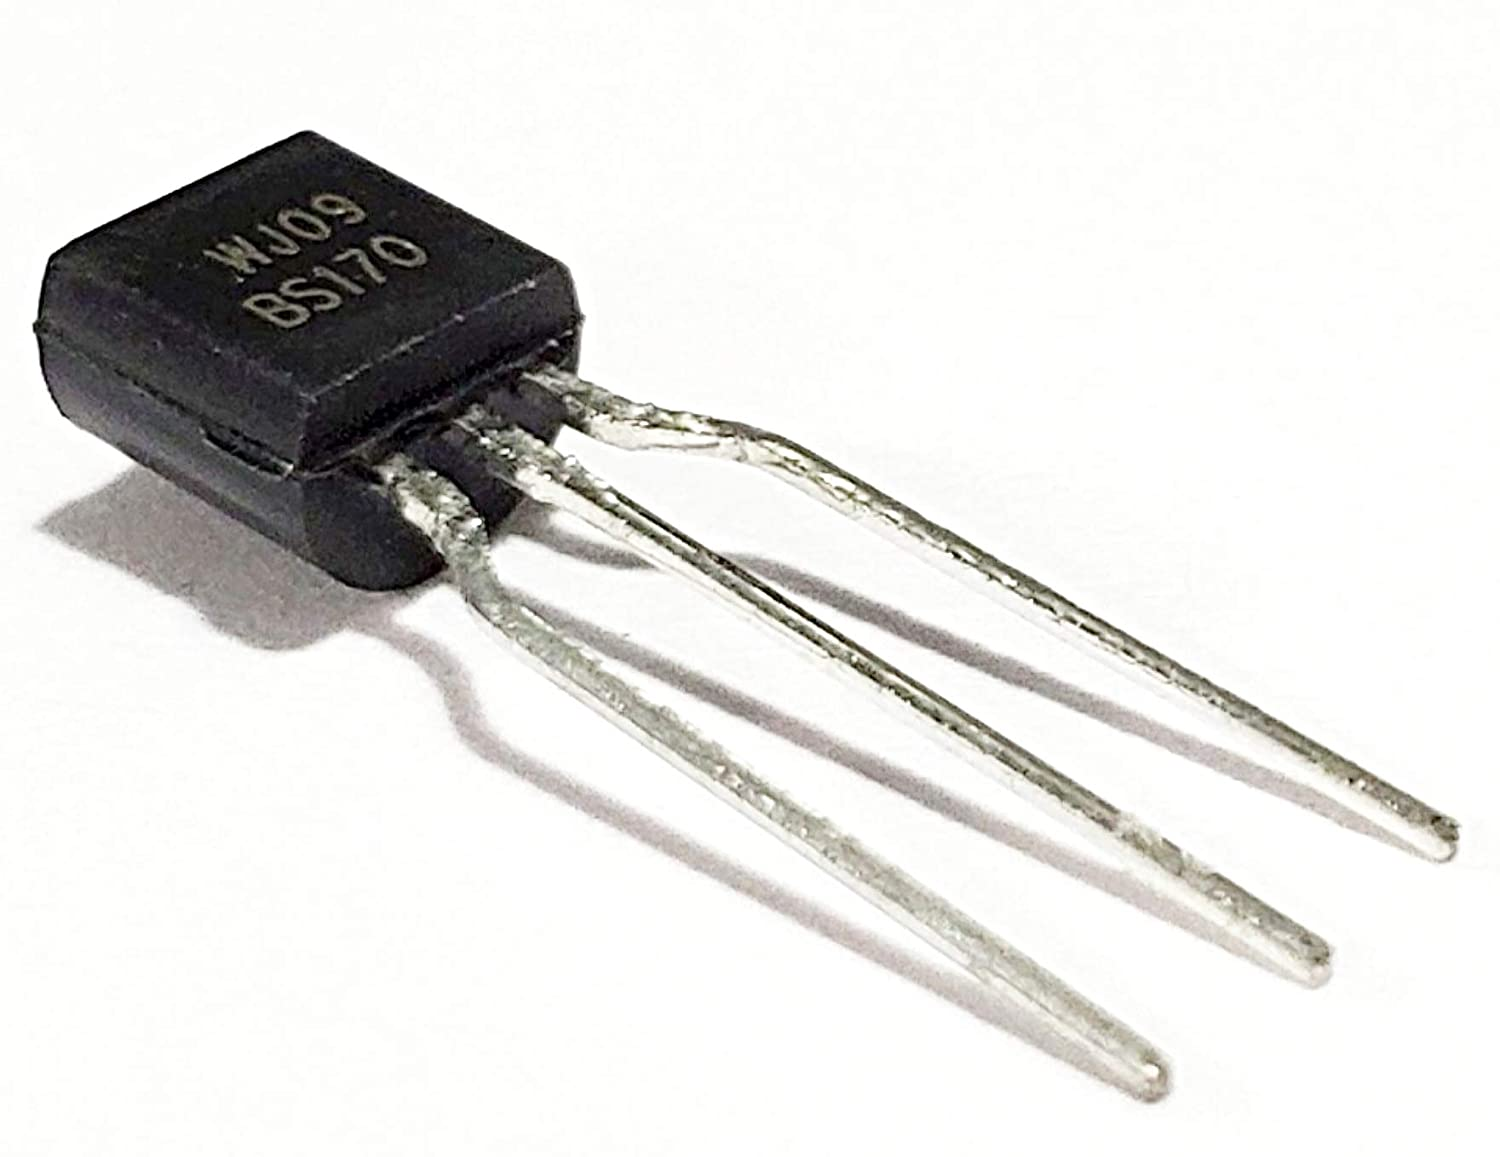 Juried Engineering ON Semiconductor BS170 Small Signal MOSFET 500 mA, 60 Volts N-Channel Enhancement Mode Field Effect Transistor to−92 (to−226) (Pack of 25)